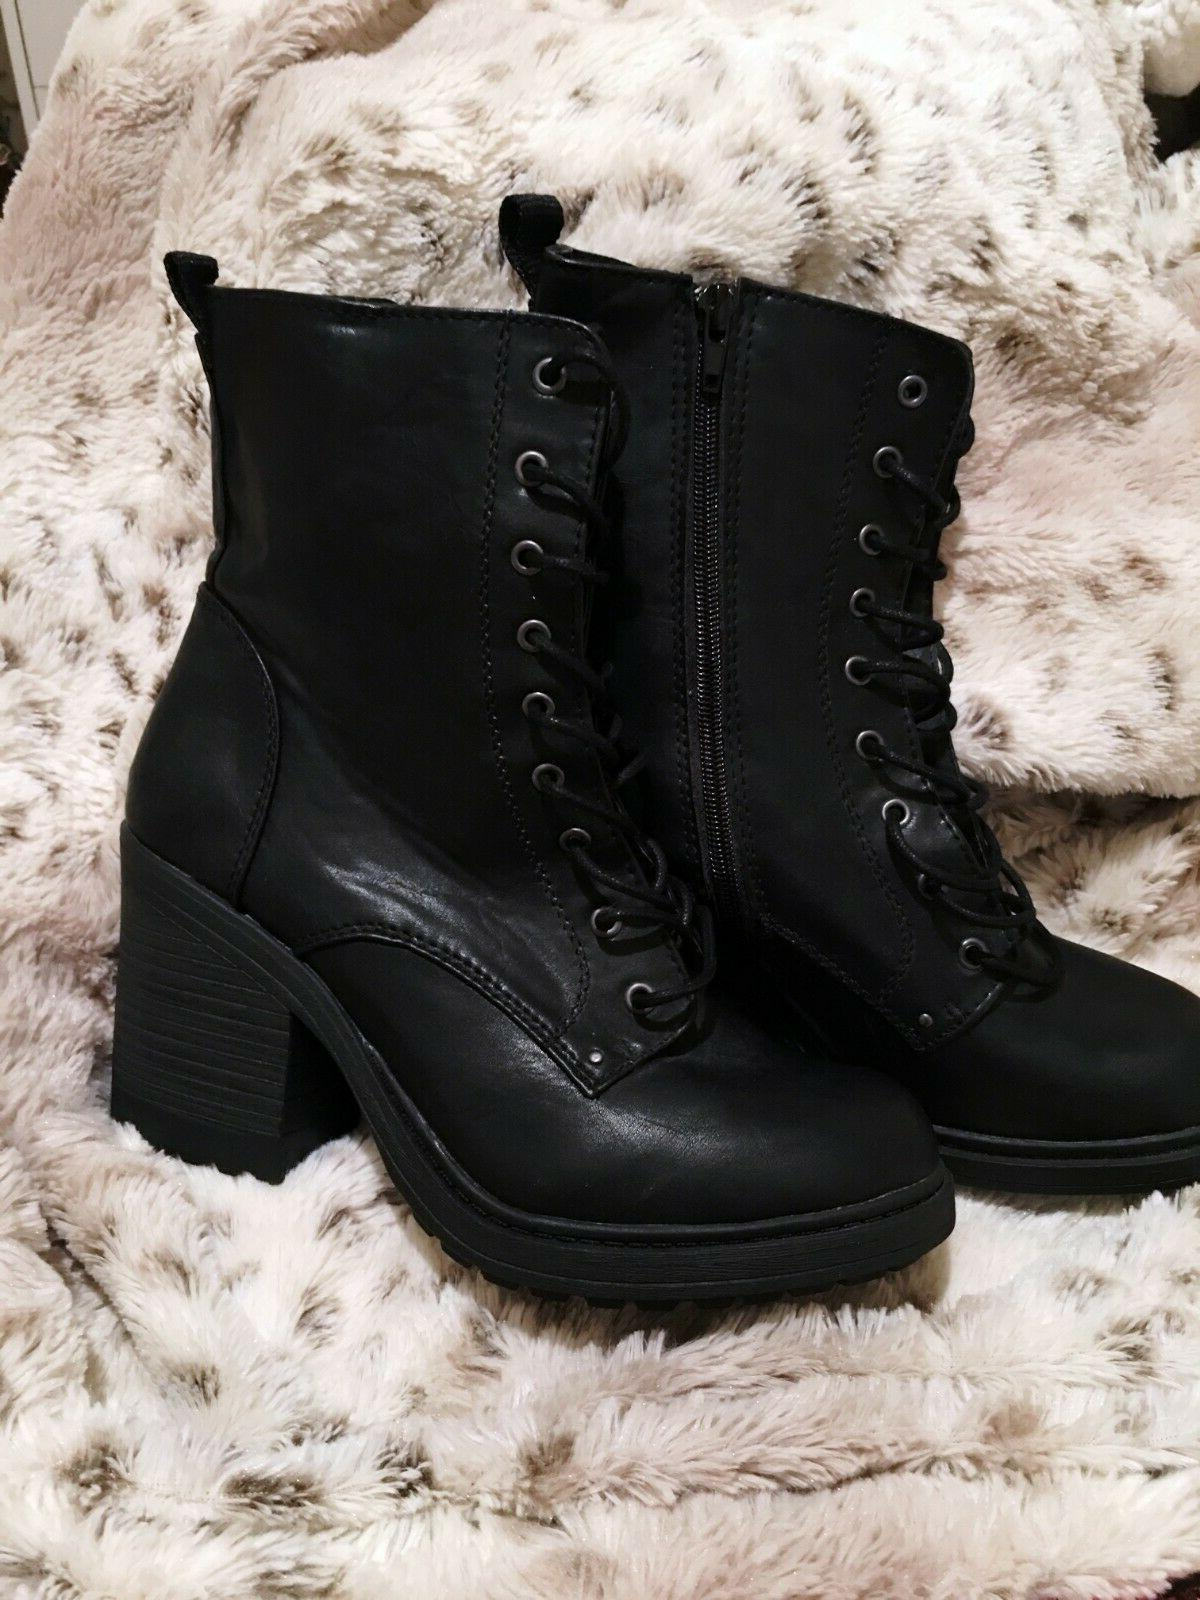 new forever21 boots heeled booties lace up